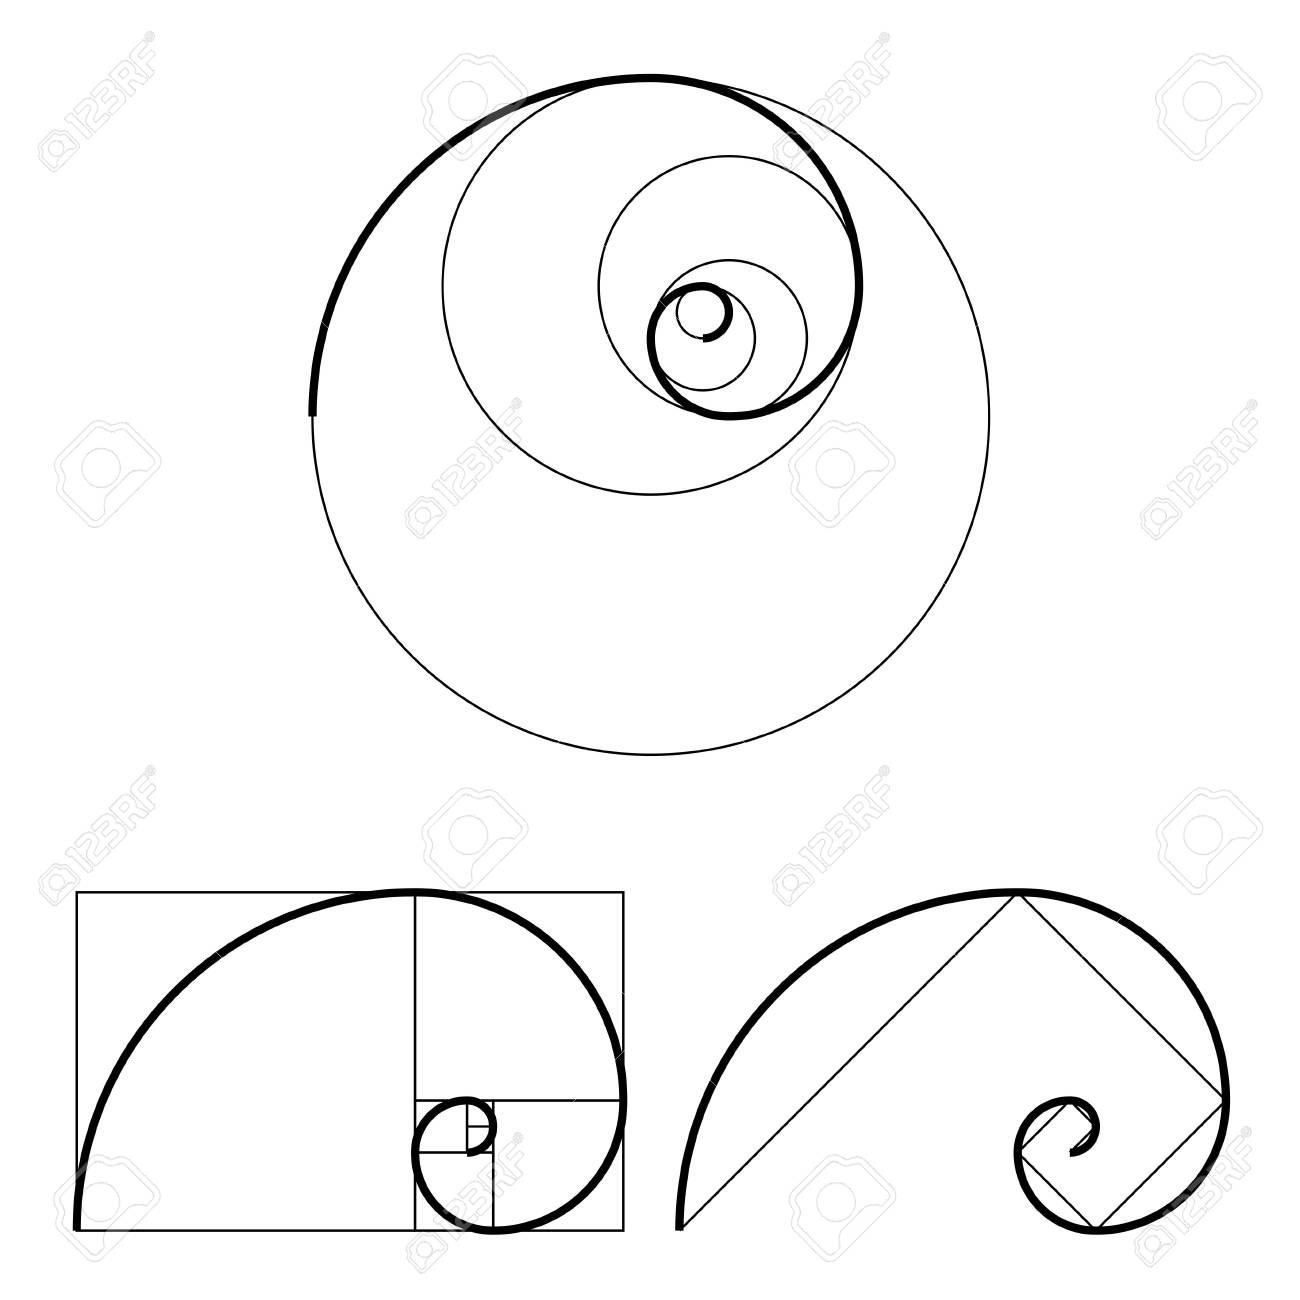 golden ratio template set vector illustration royalty free cliparts rh 123rf com golden ratio vector free golden ratio vector download